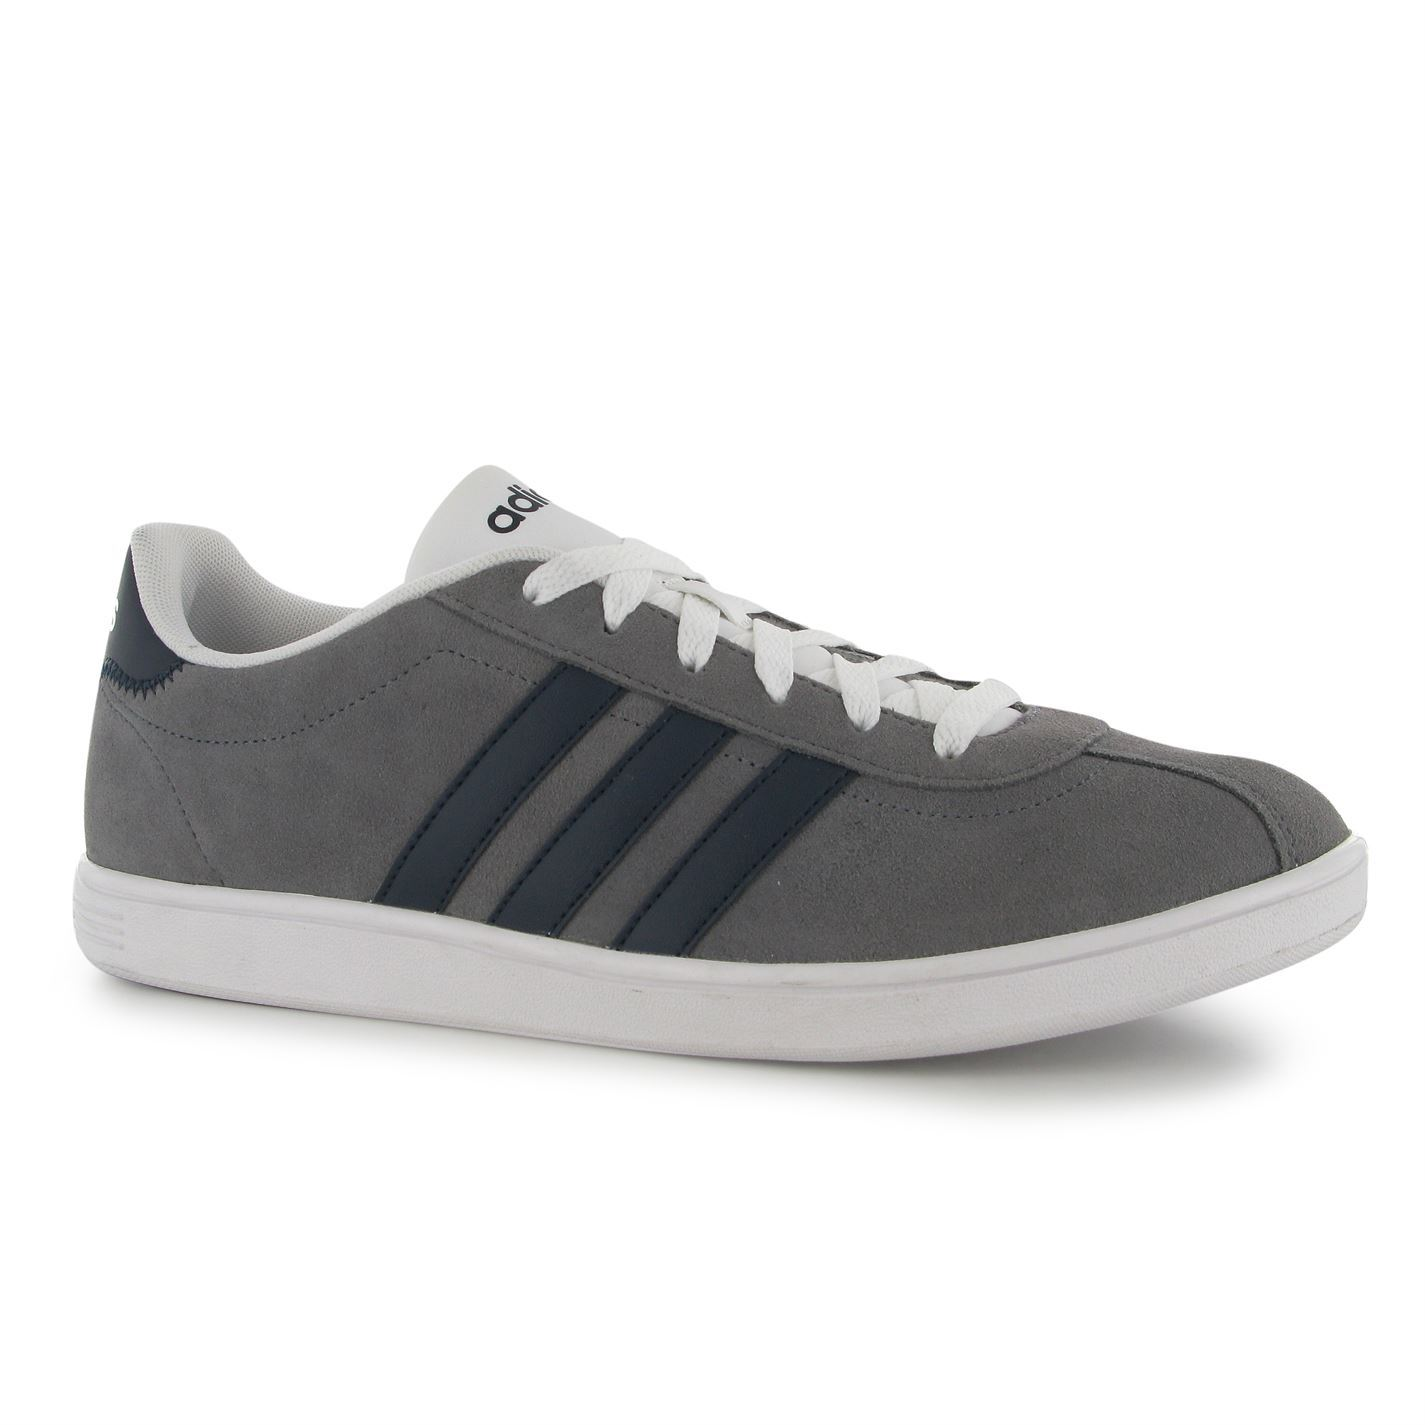 e41373af5e990 adidas Mens VL Court Suede Sport Shoes Trainers Sneakers Footwear